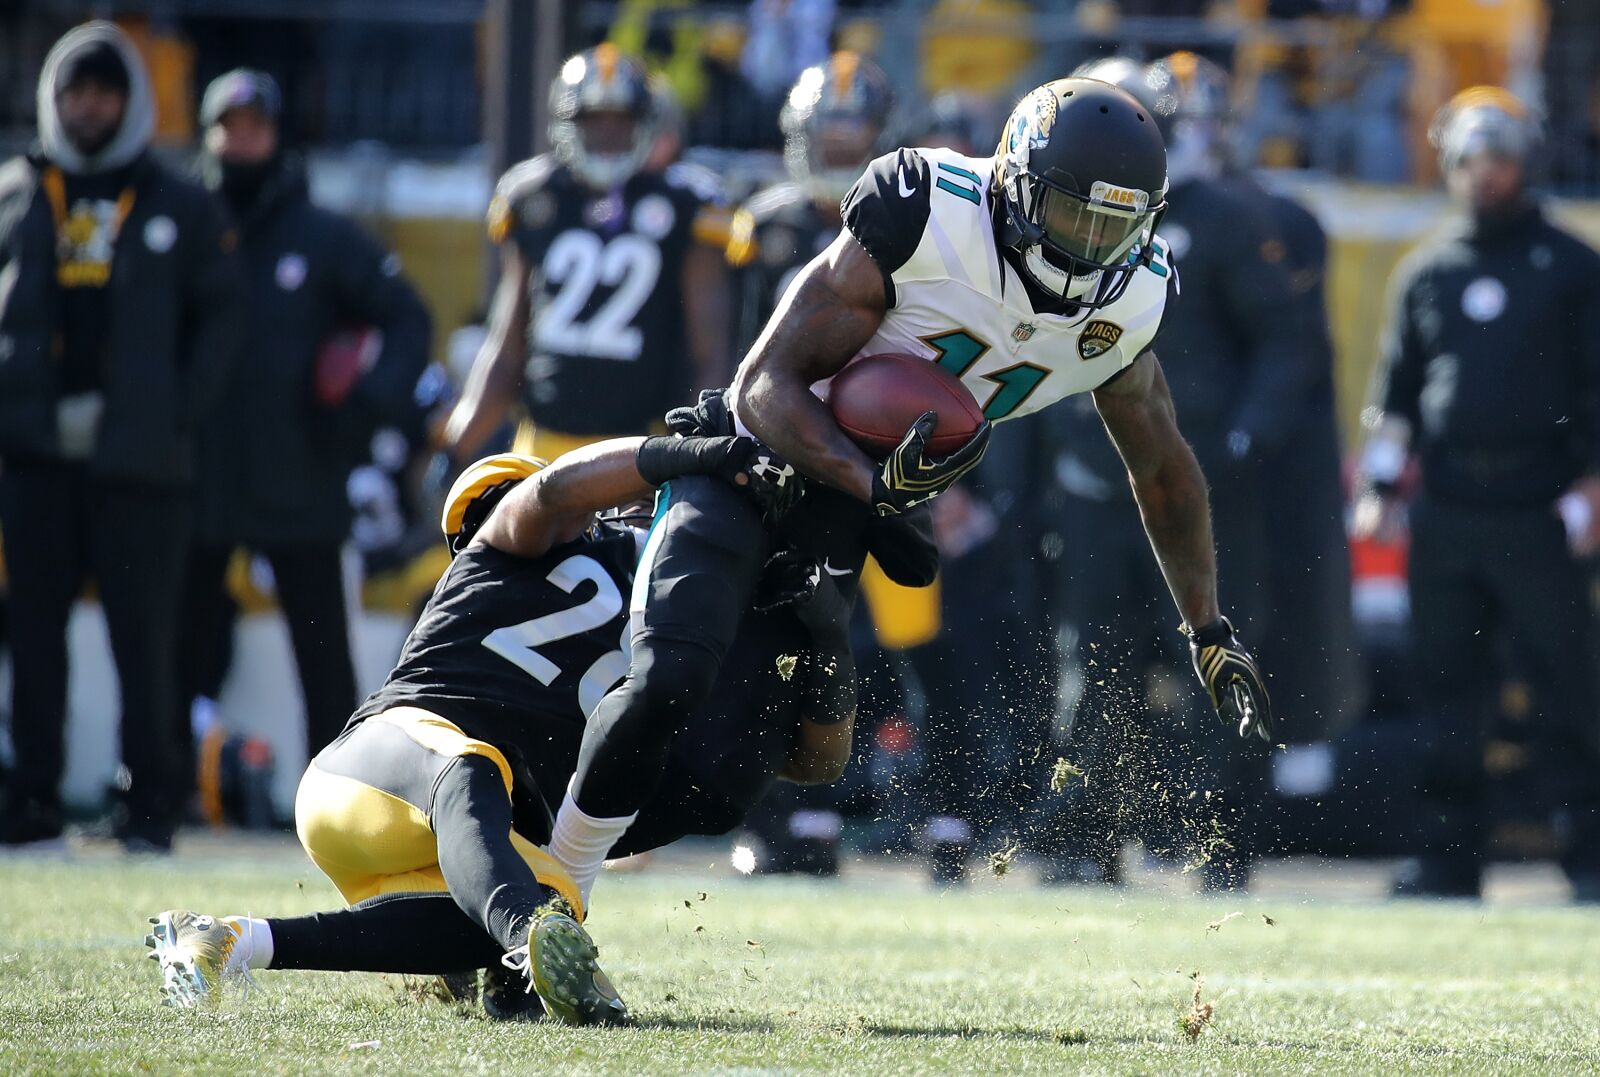 c42a2780 Jaguars wide receiver Marqise Lee shows progress from injury